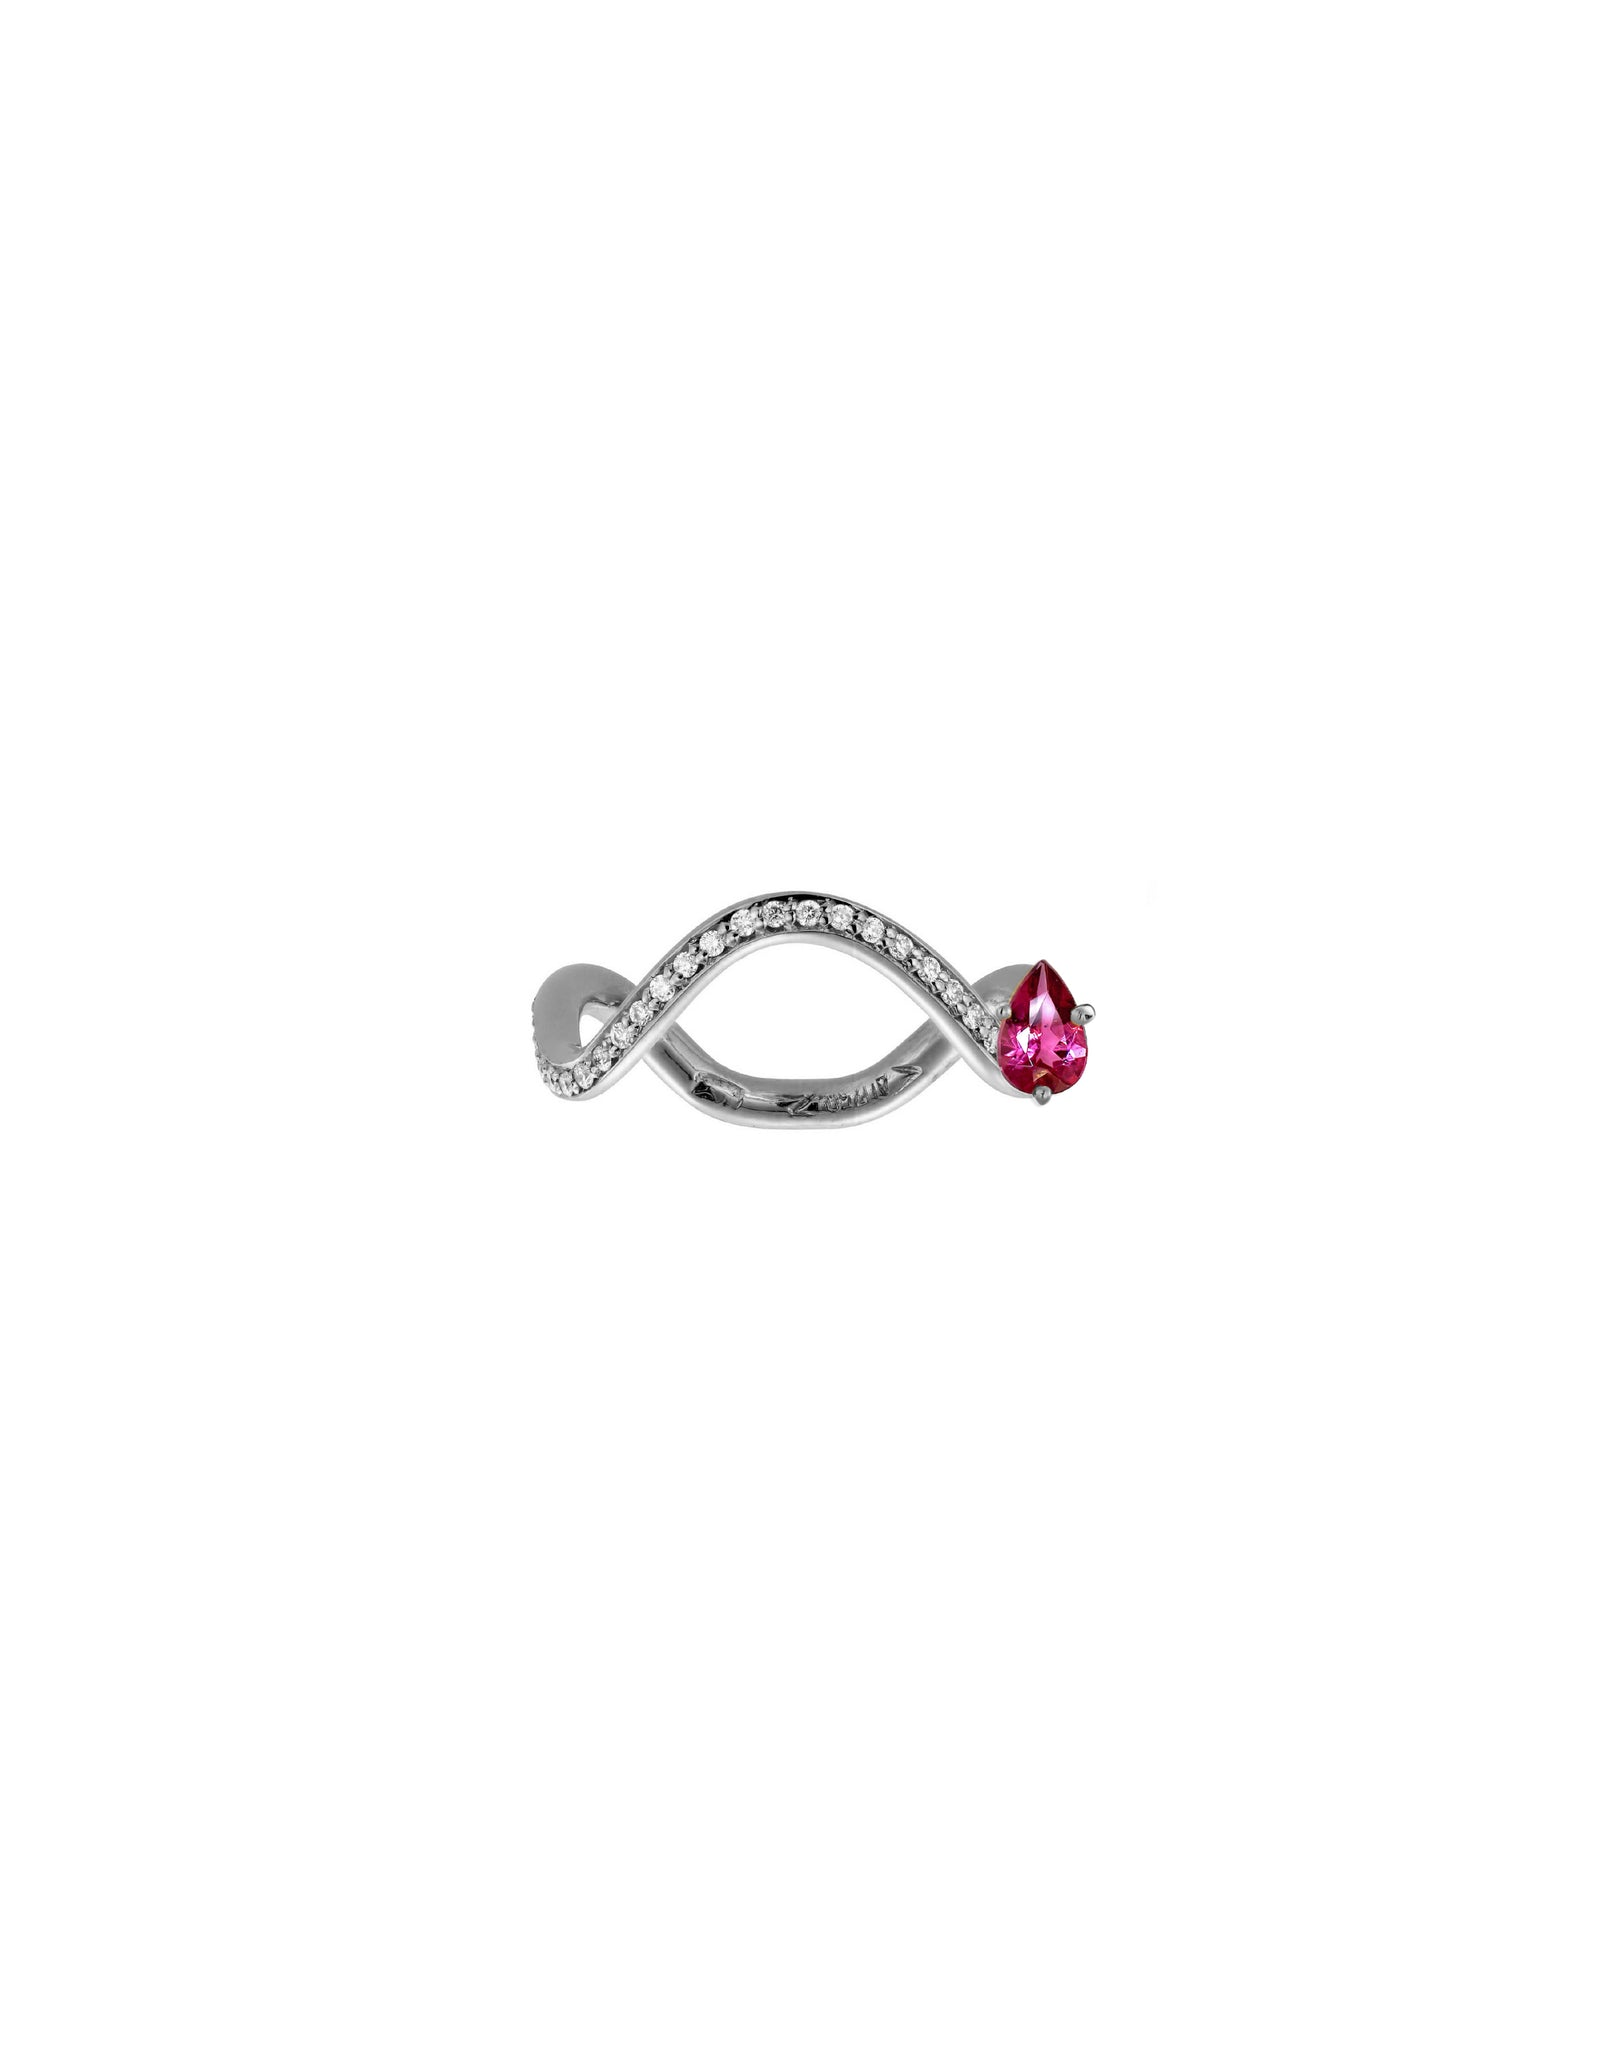 Nayestones Fine Jewelry Pink Tourmaline Ring with Diamond October Birthstone